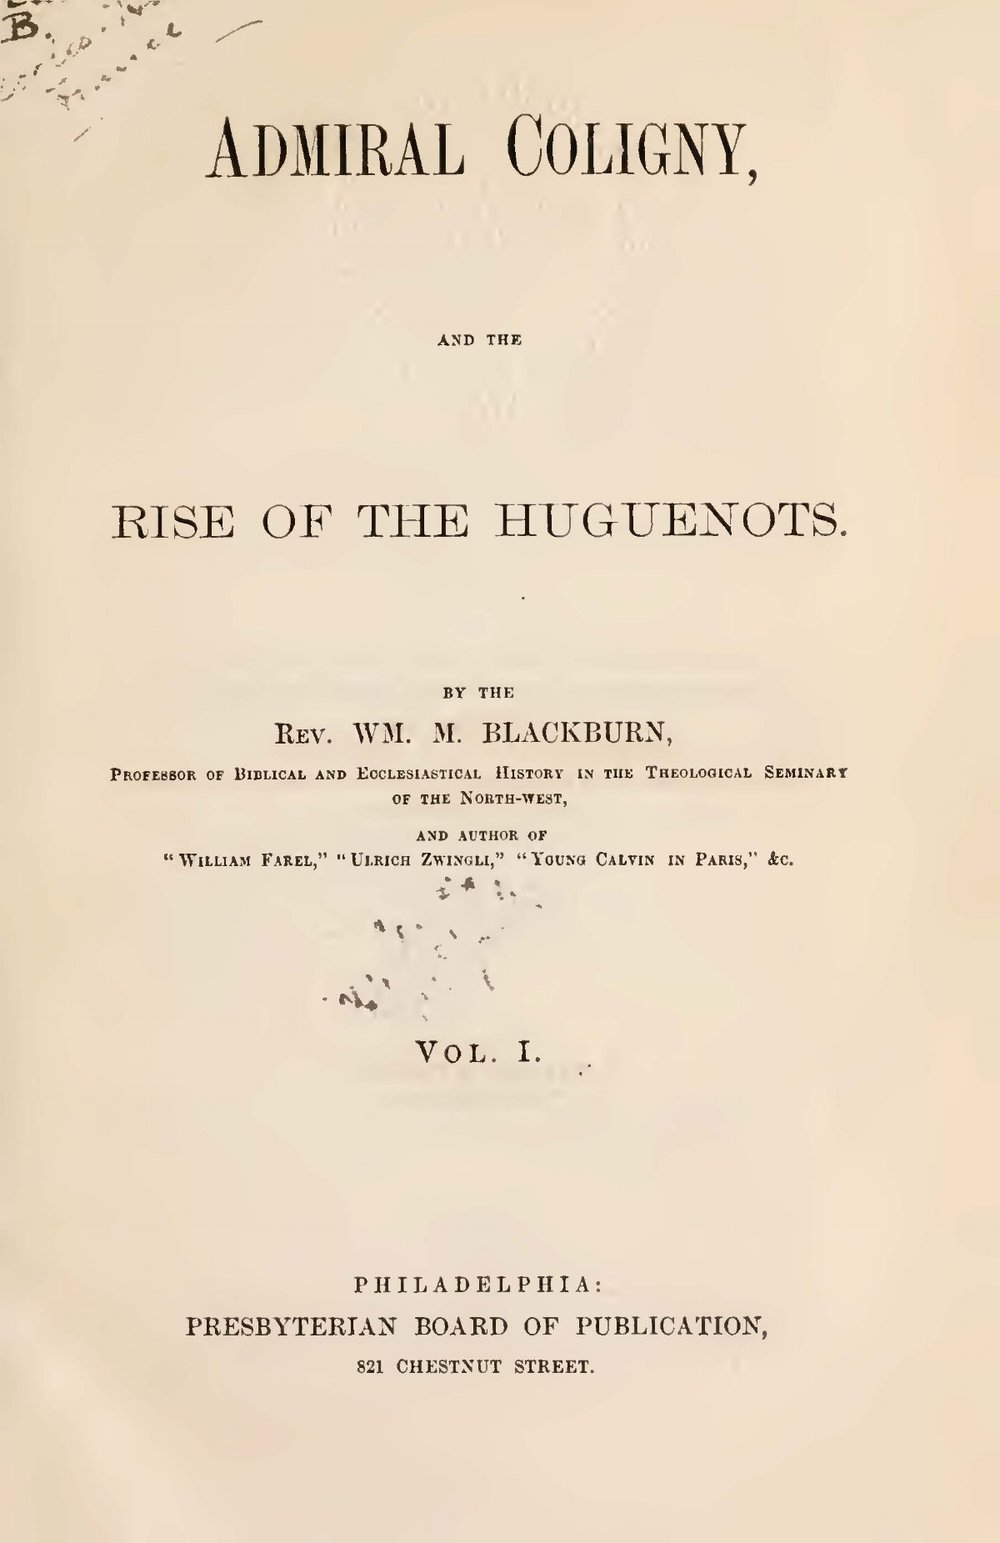 Blackburn, William Maxwell, Admiral Coligny and the Rise of the Huguenots, Vol. 1 Title Page.jpg